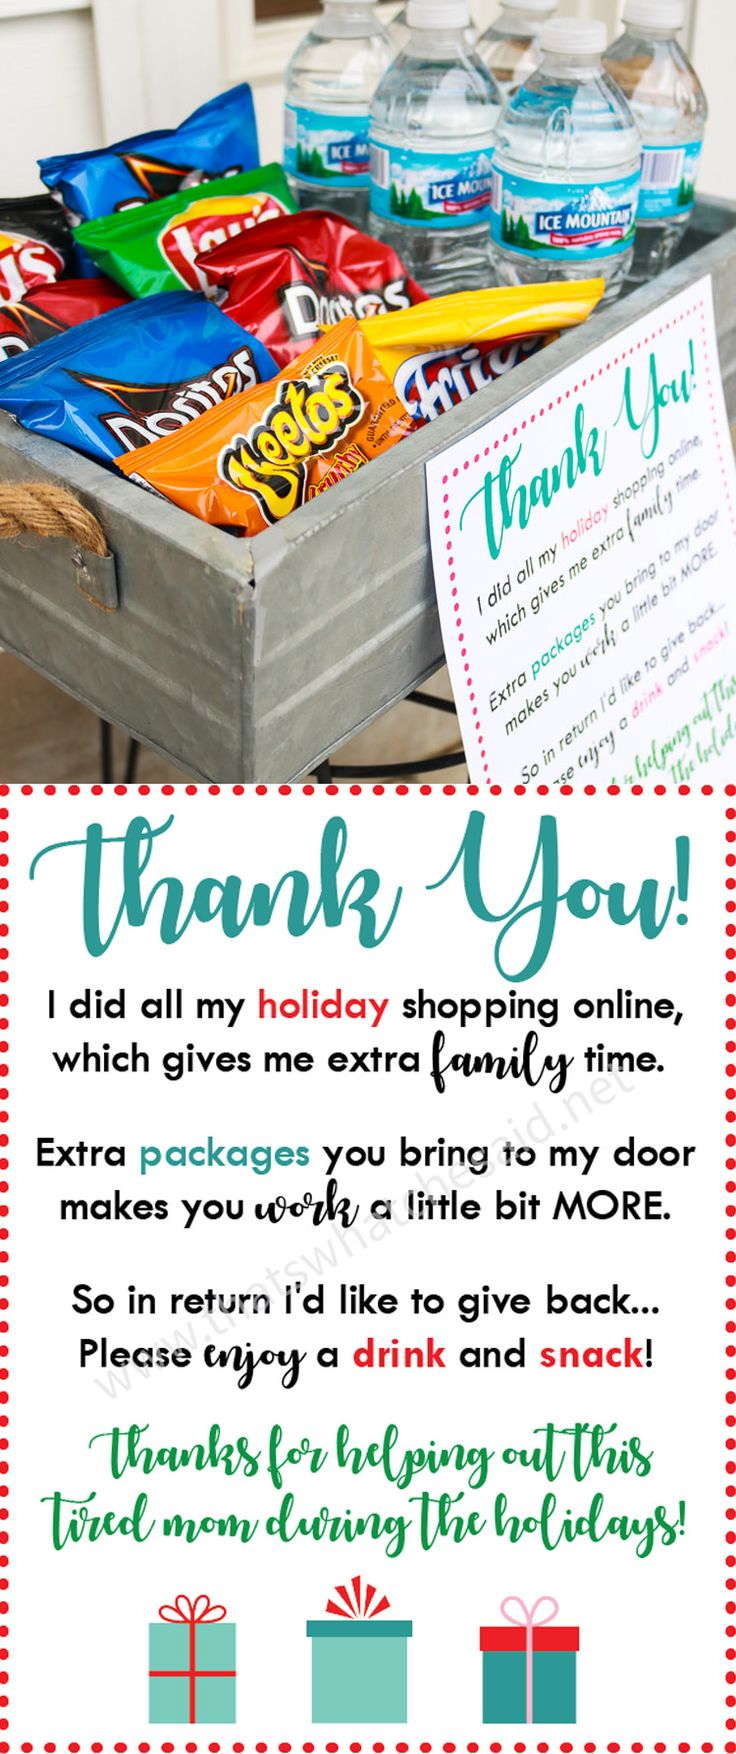 Say thank you to all the amazing delivery drivers this holiday season with this free printable! Add some snacks and drinks and you will make their day a bit brighter! via @cspangenberg